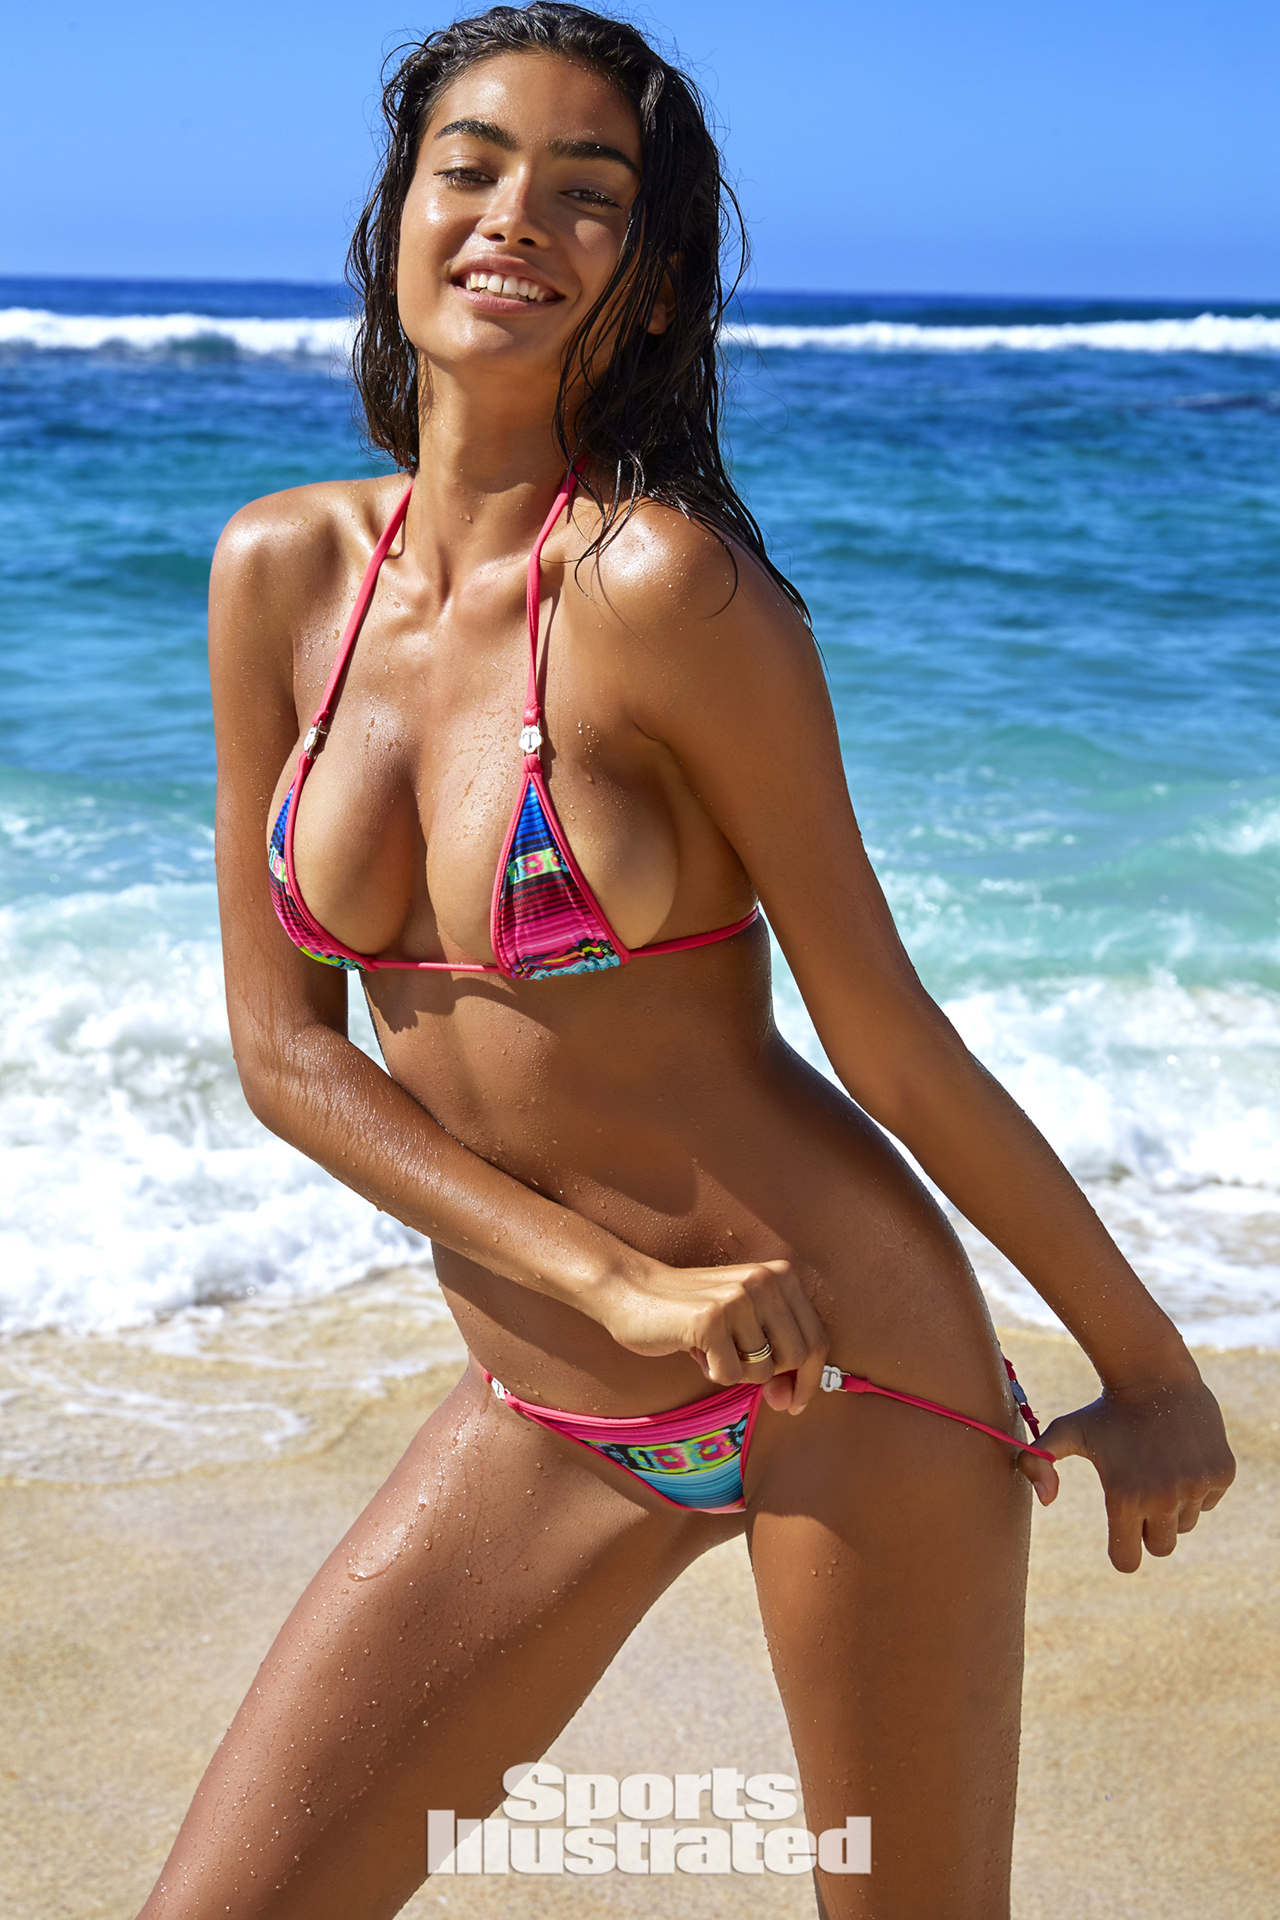 Bikini Kelly Gale nudes (11 foto and video), Pussy, Fappening, Selfie, legs 2006